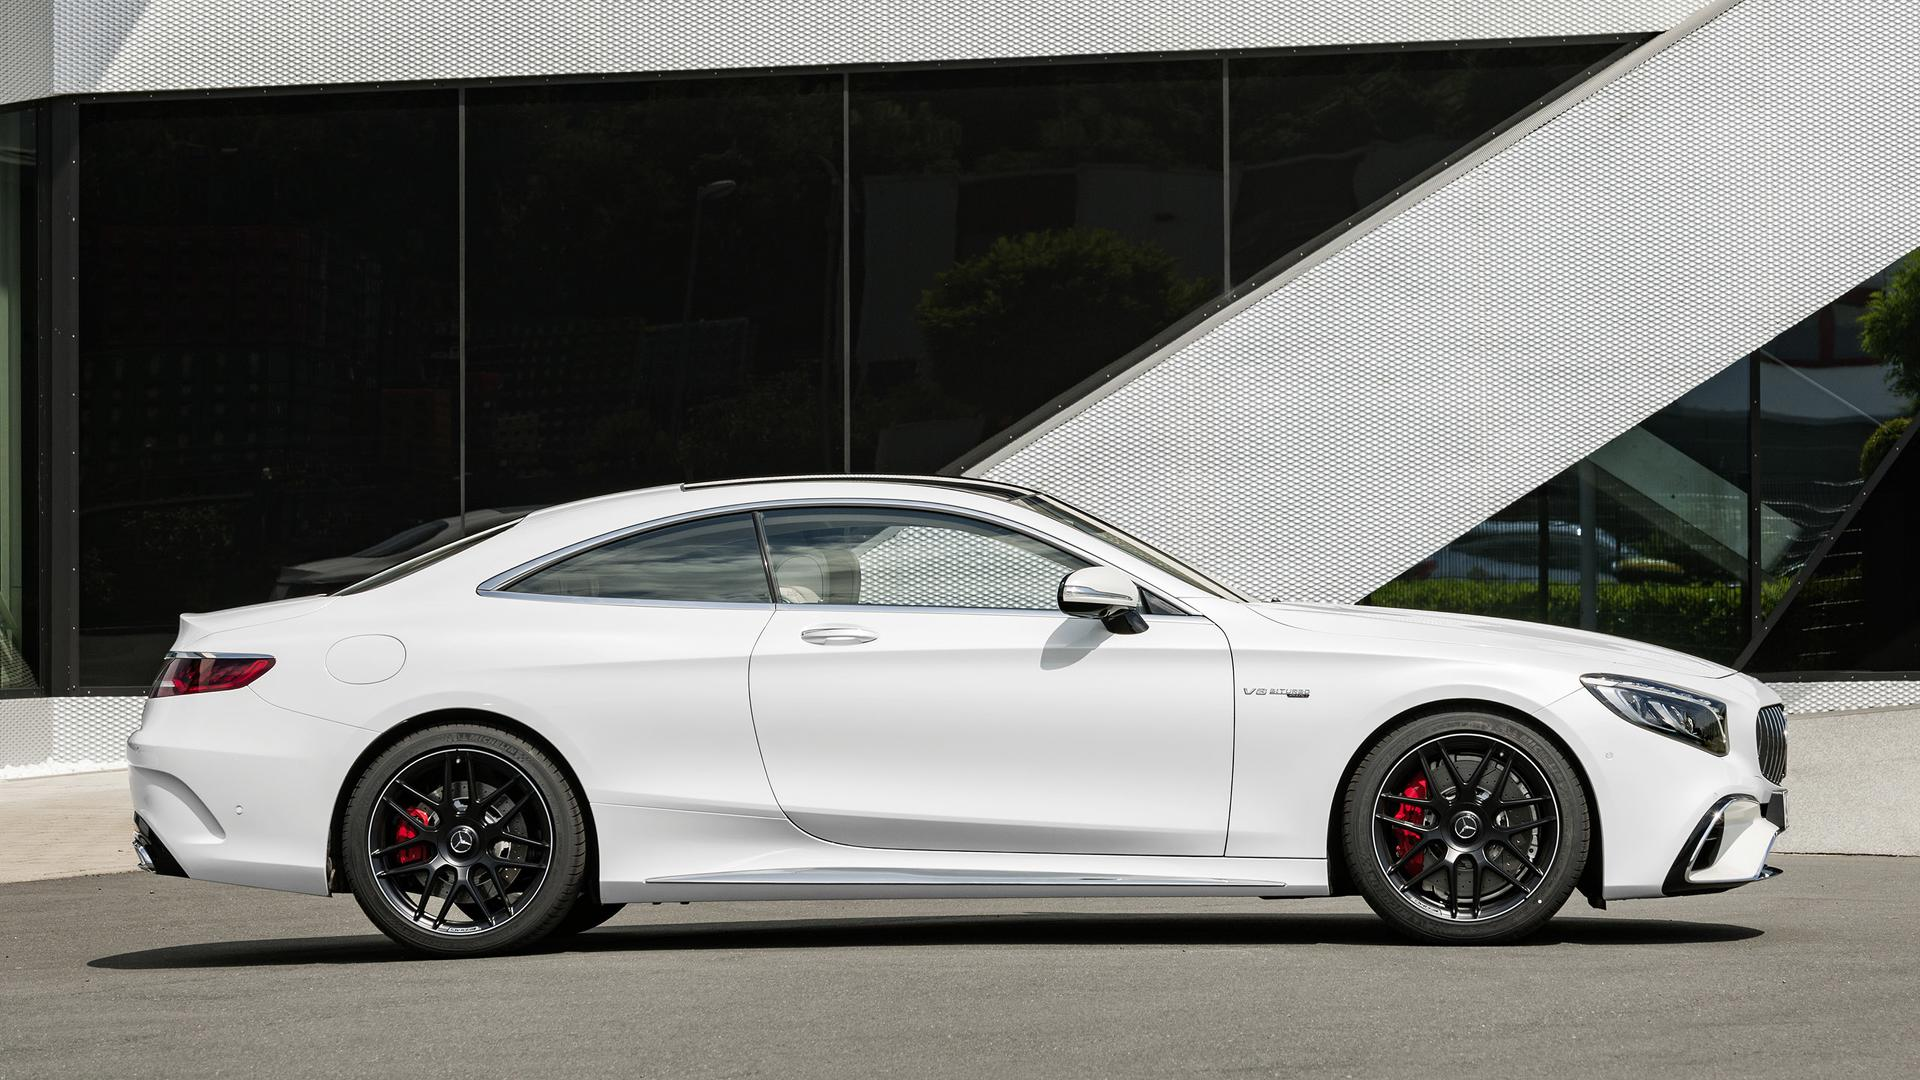 https://icdn-4.motor1.com/images/mgl/ALmg2/s1/2018-mercedes-amg-s63-coupe.jpg